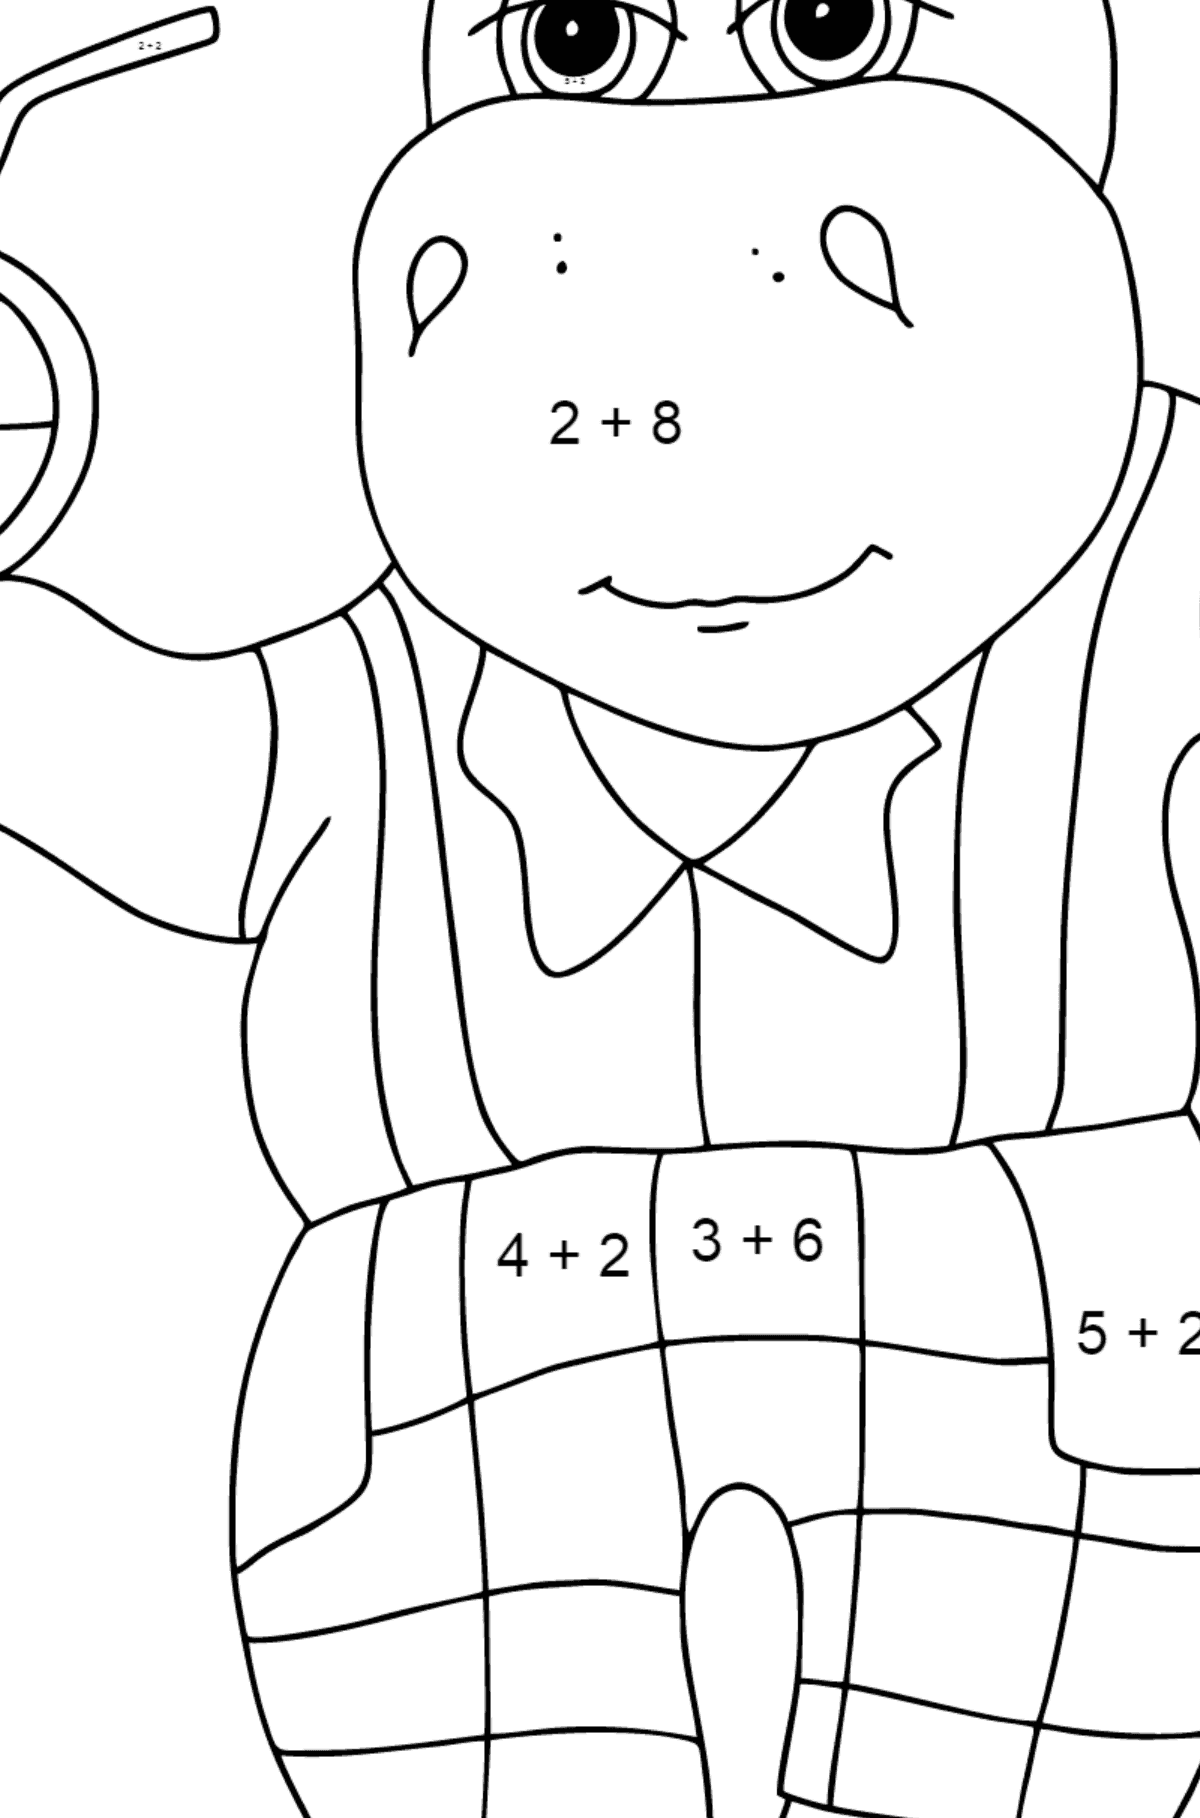 Coloring Page - A Hippo on a Beach with Juice for Kids  - Color by Number Addition